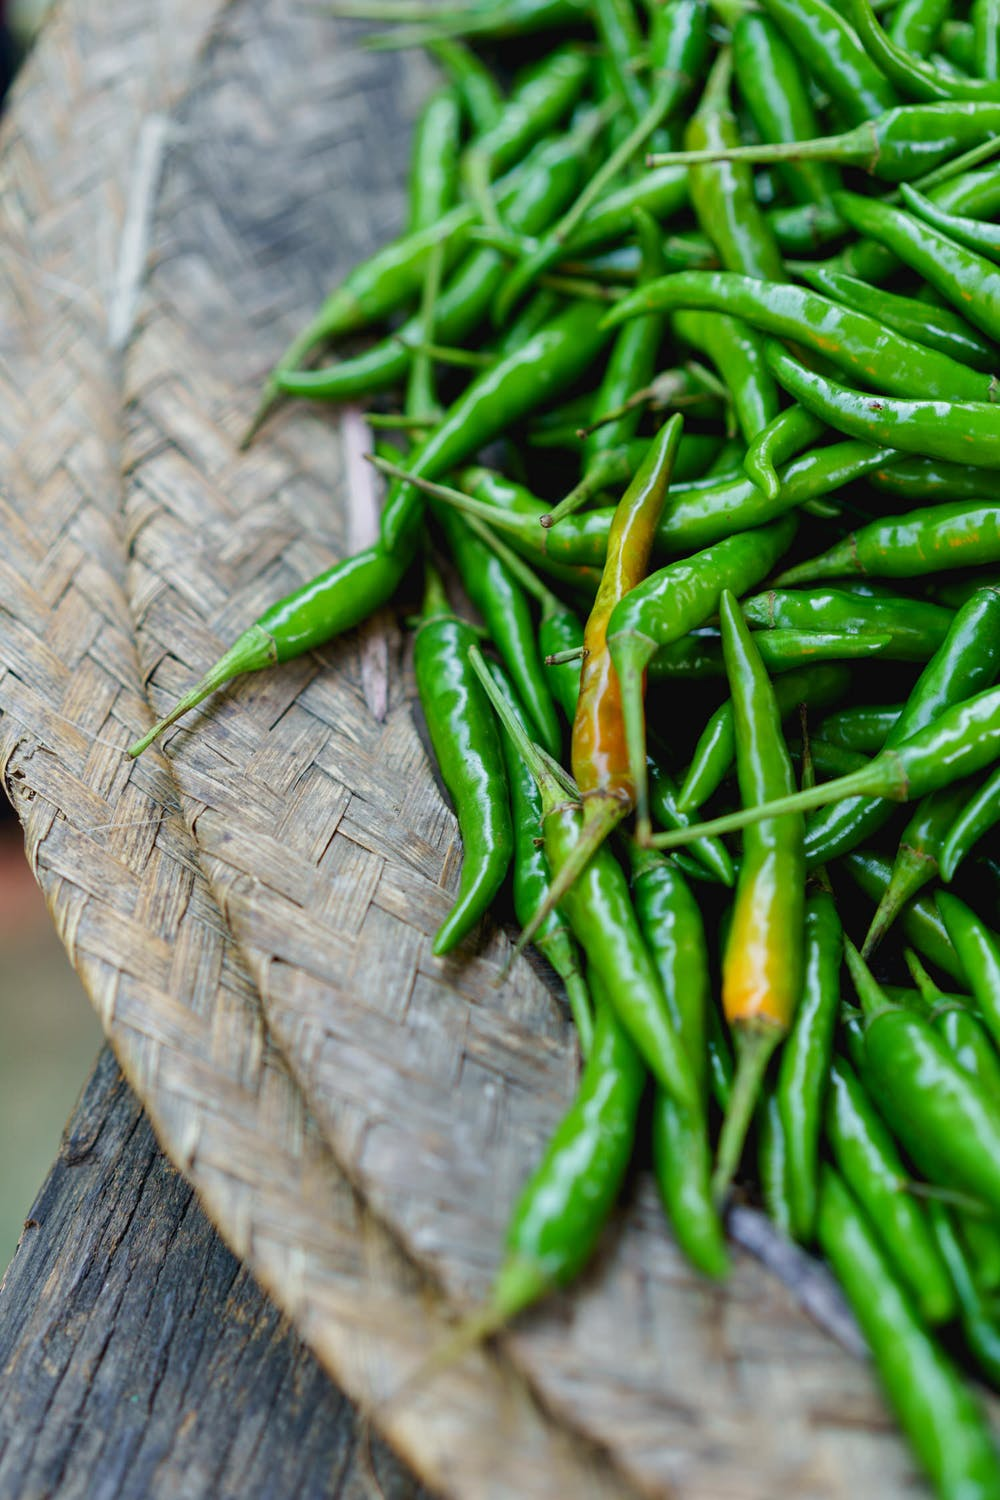 Bright green chili peppers for sale on a woven mat in the village market of Nyaungshwe Myanmar